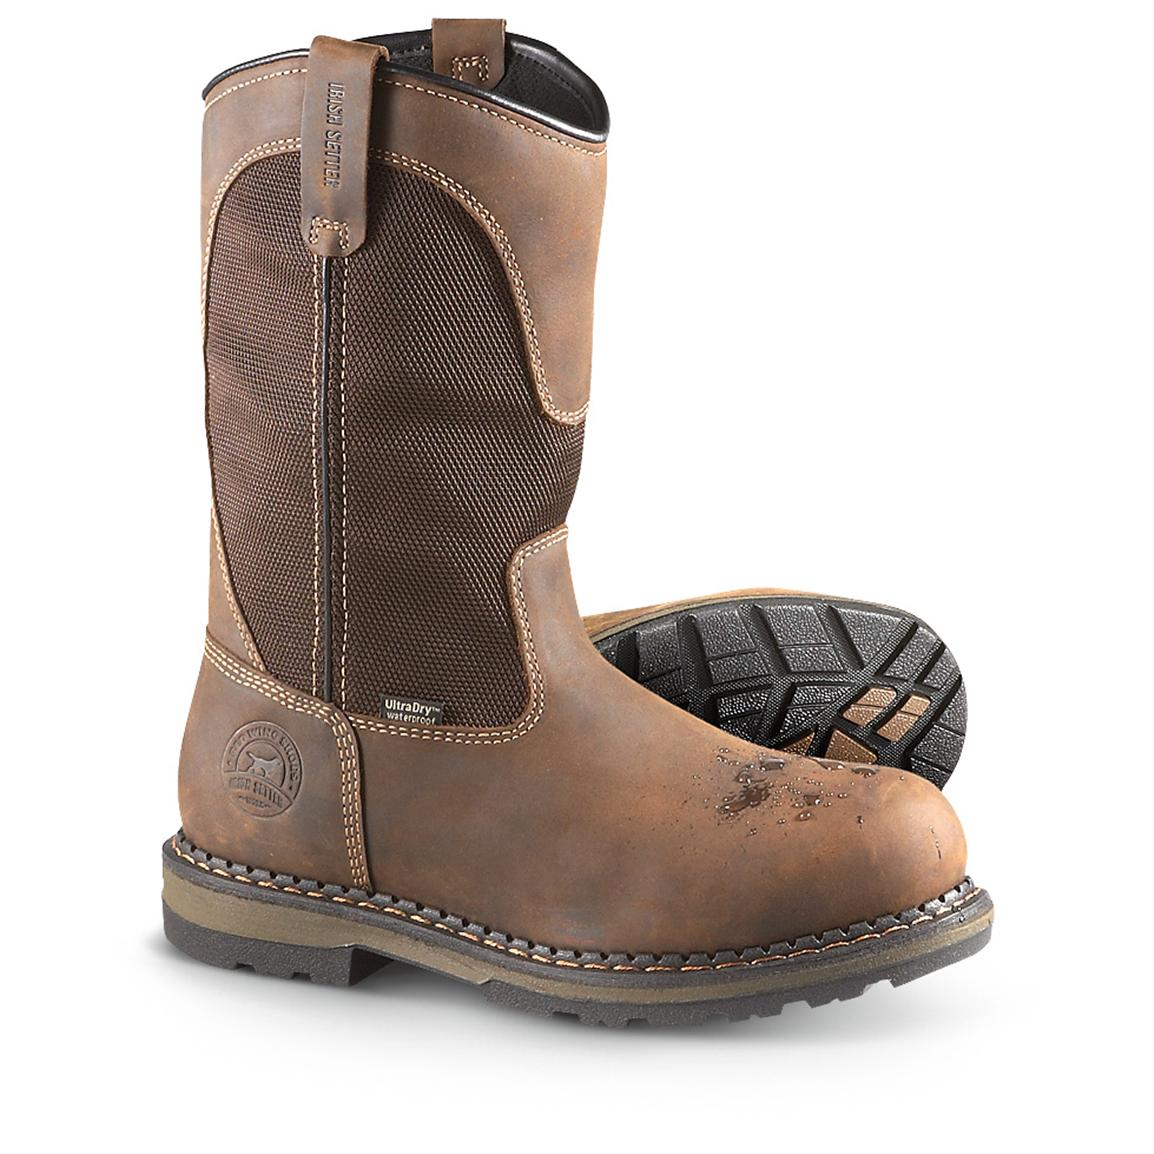 Men's Irish Setter® Waterproof Aluminum Toe Work Boots, Hazelnut Voyageur